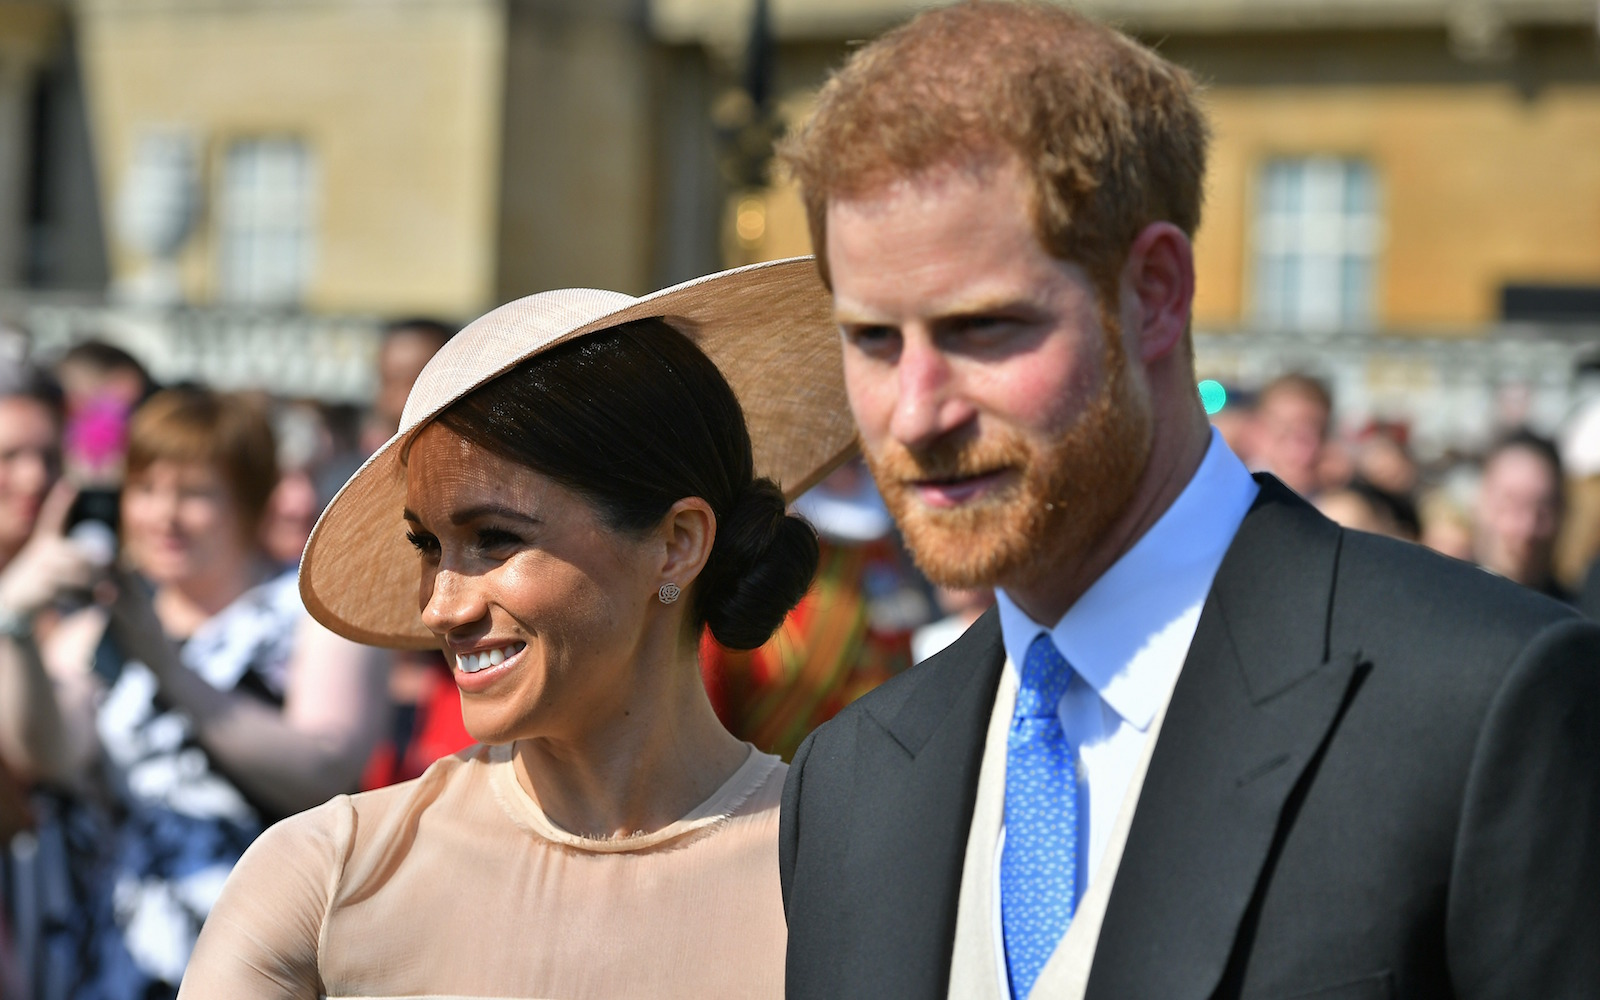 Meghan Markle and Prince Harry at their first official outing after the royal wedding